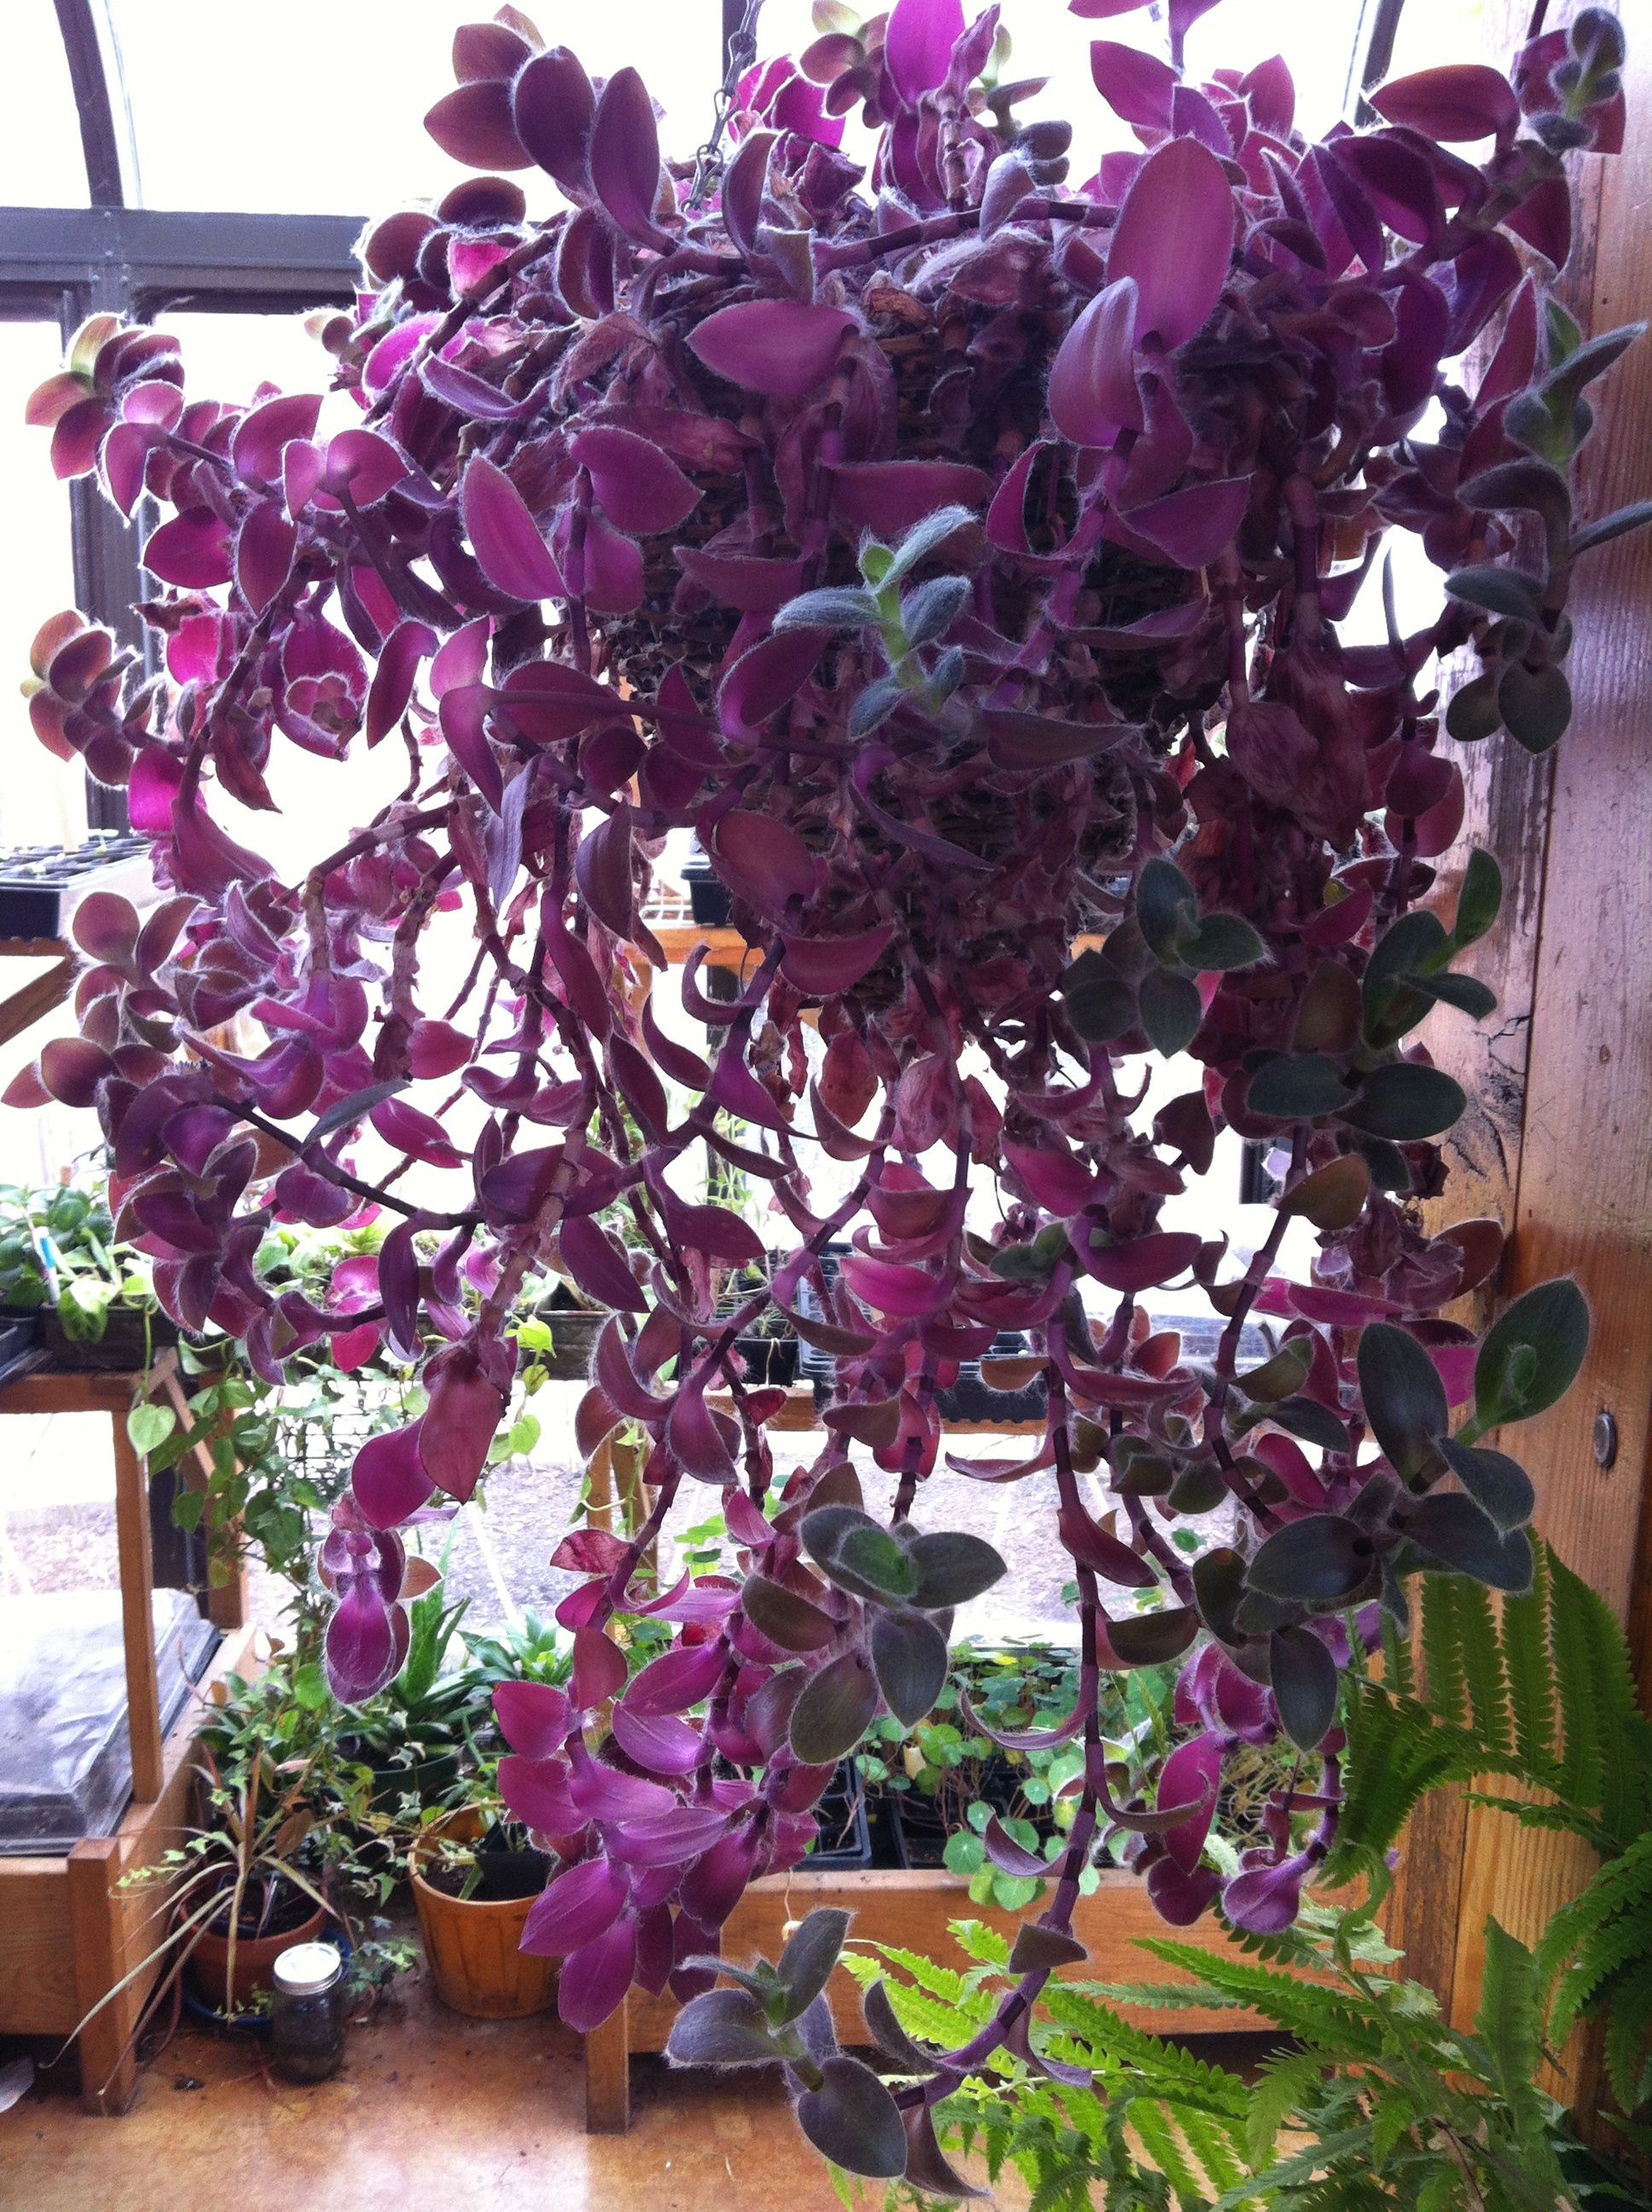 house plants i want purple wandering jew - Flowering House Plants Purple